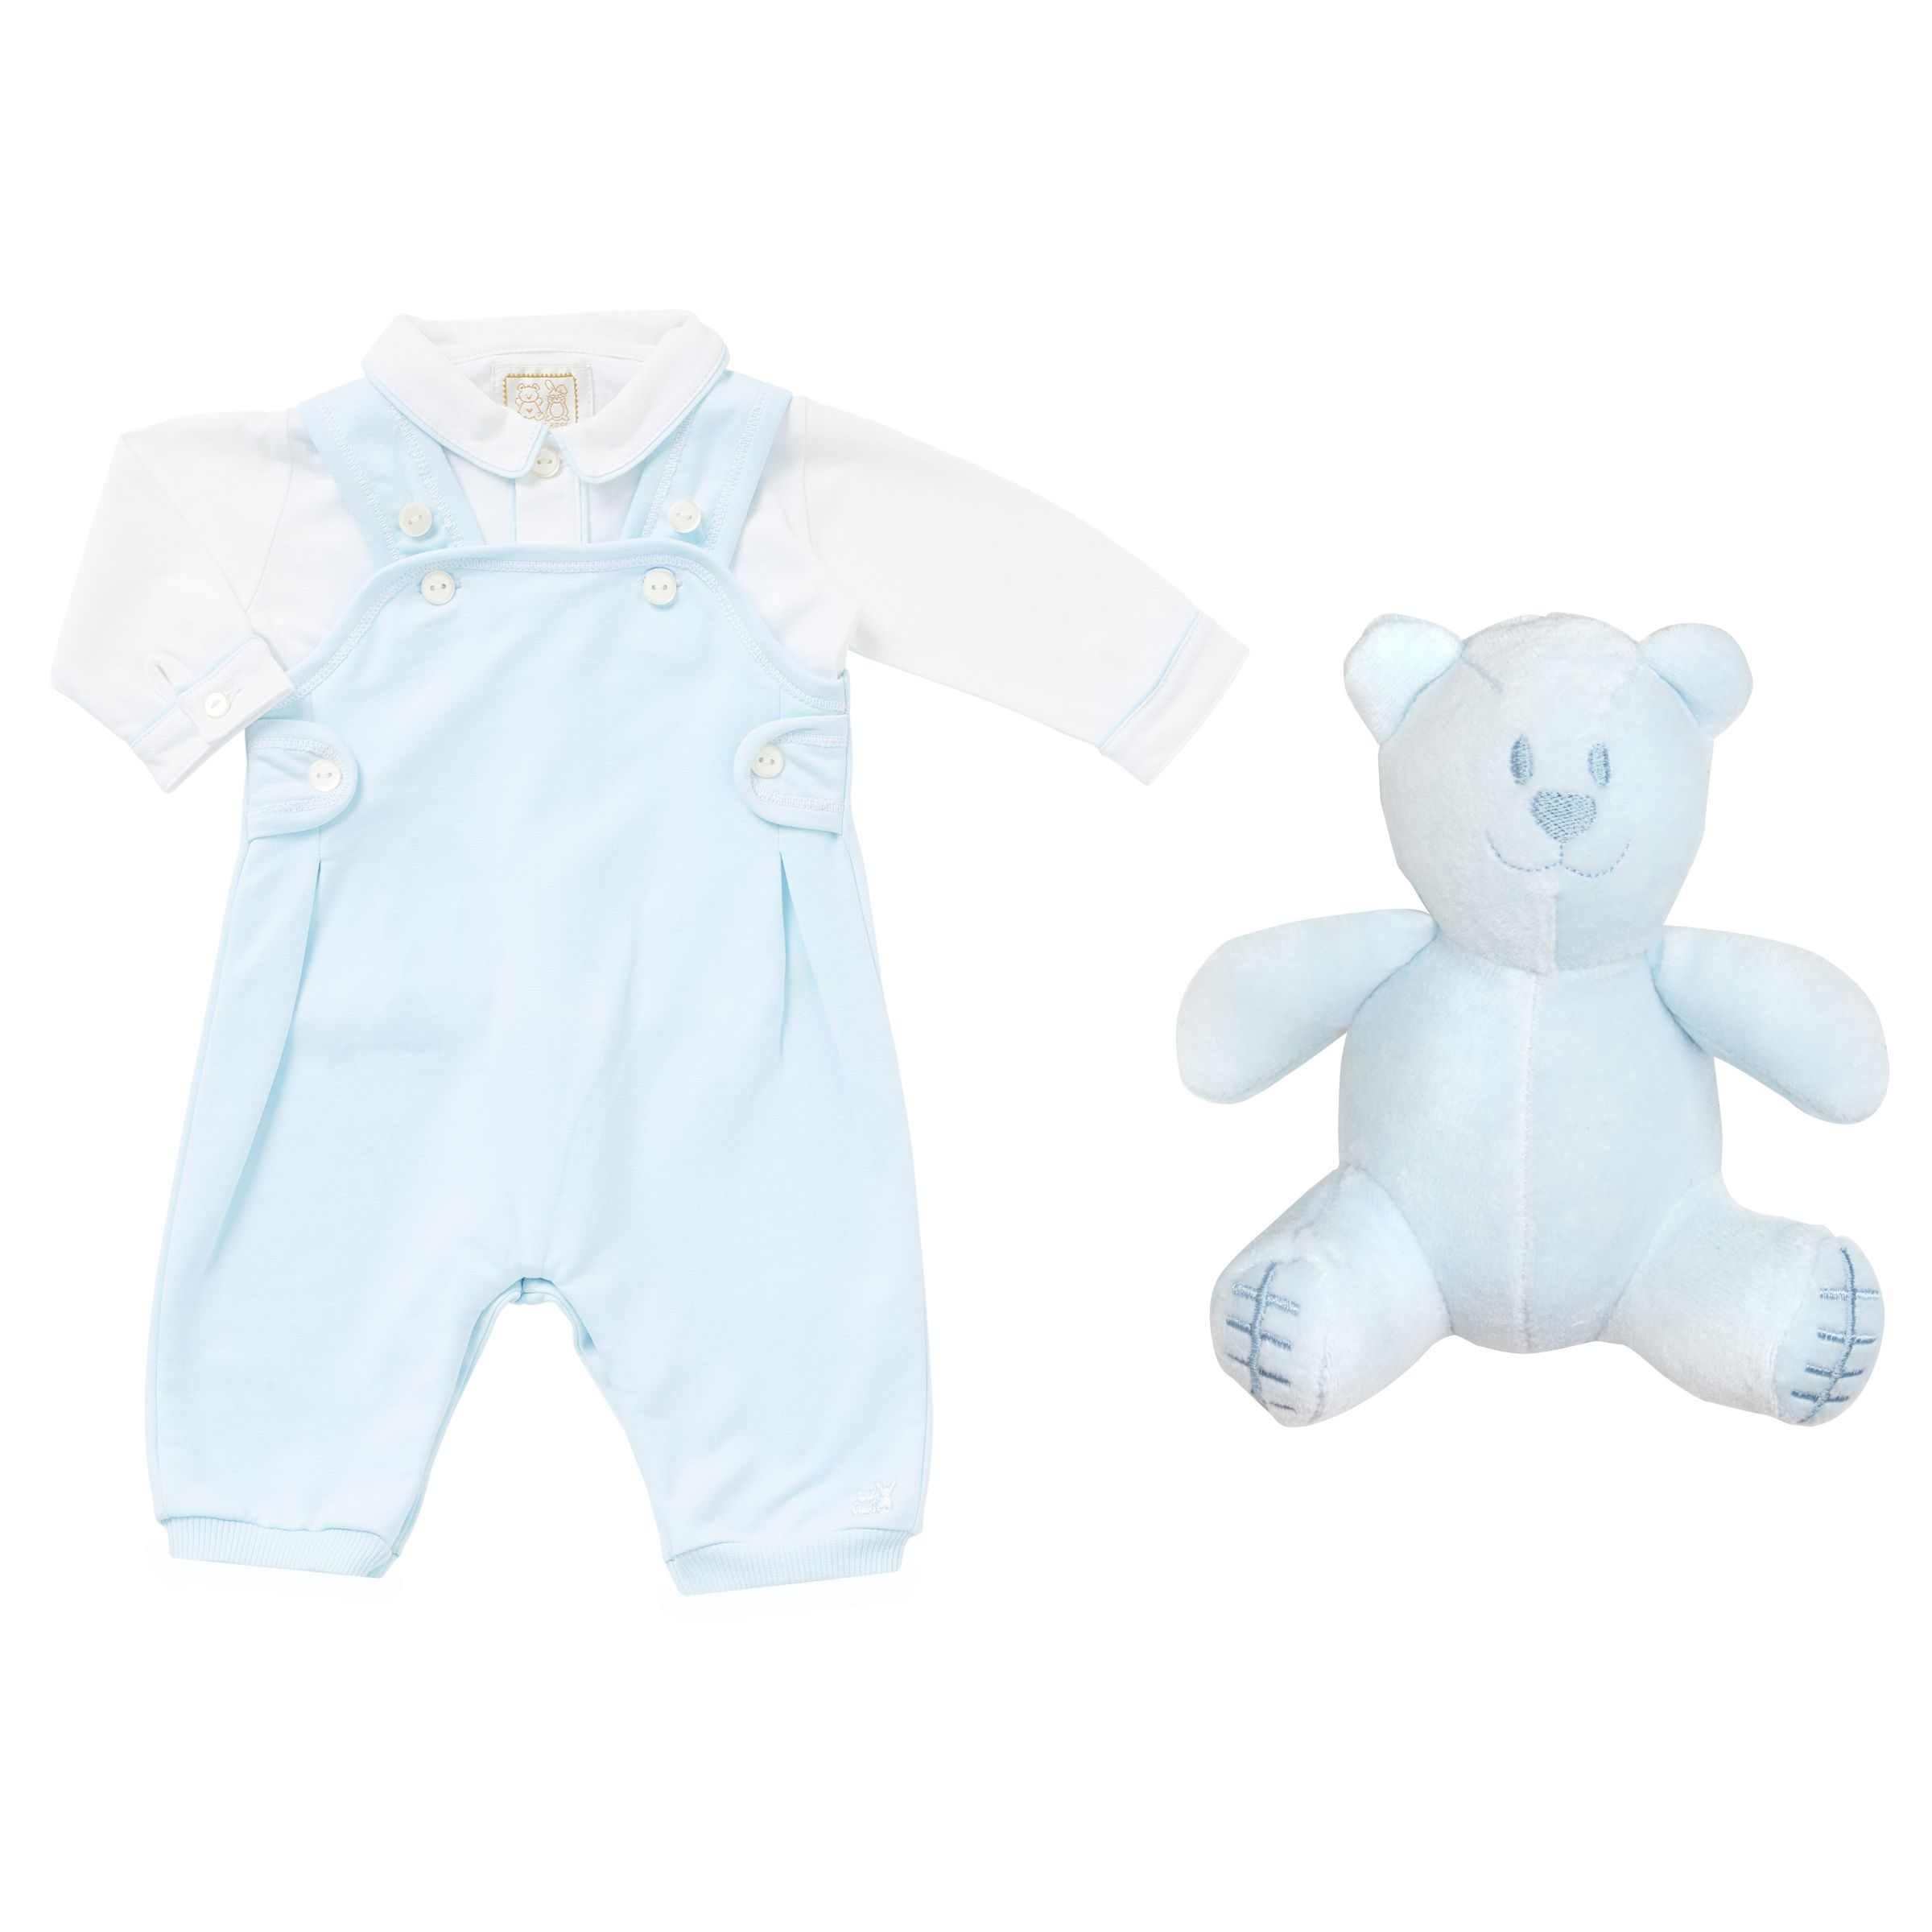 Emile et Rose Emile et Rose Baby Kenny Two Piece Dungarees and Shirt Set, Blue